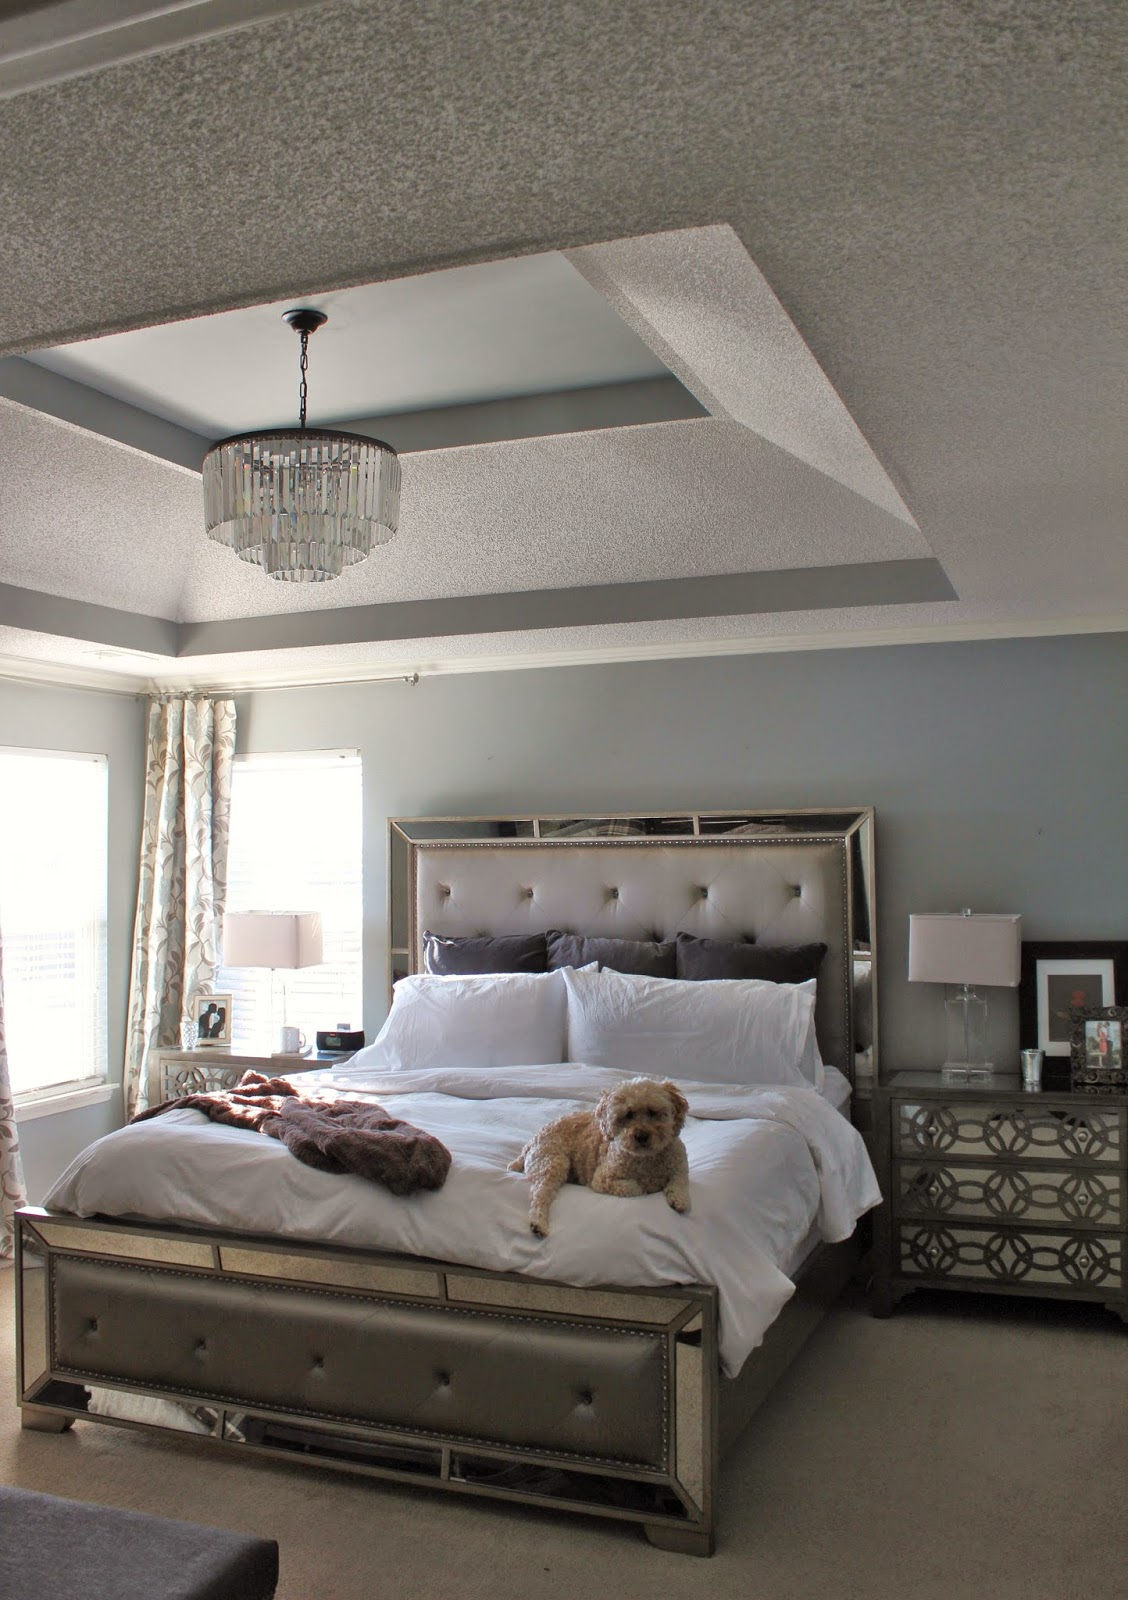 Beautiful Nebraska Furniture Mart Mattress #12: After A Few Calls To The Manufacturer And To Nebraska Furniture Mart Because We Were Given The Wrong Hardware And No Instructions And Several Trips To The ...